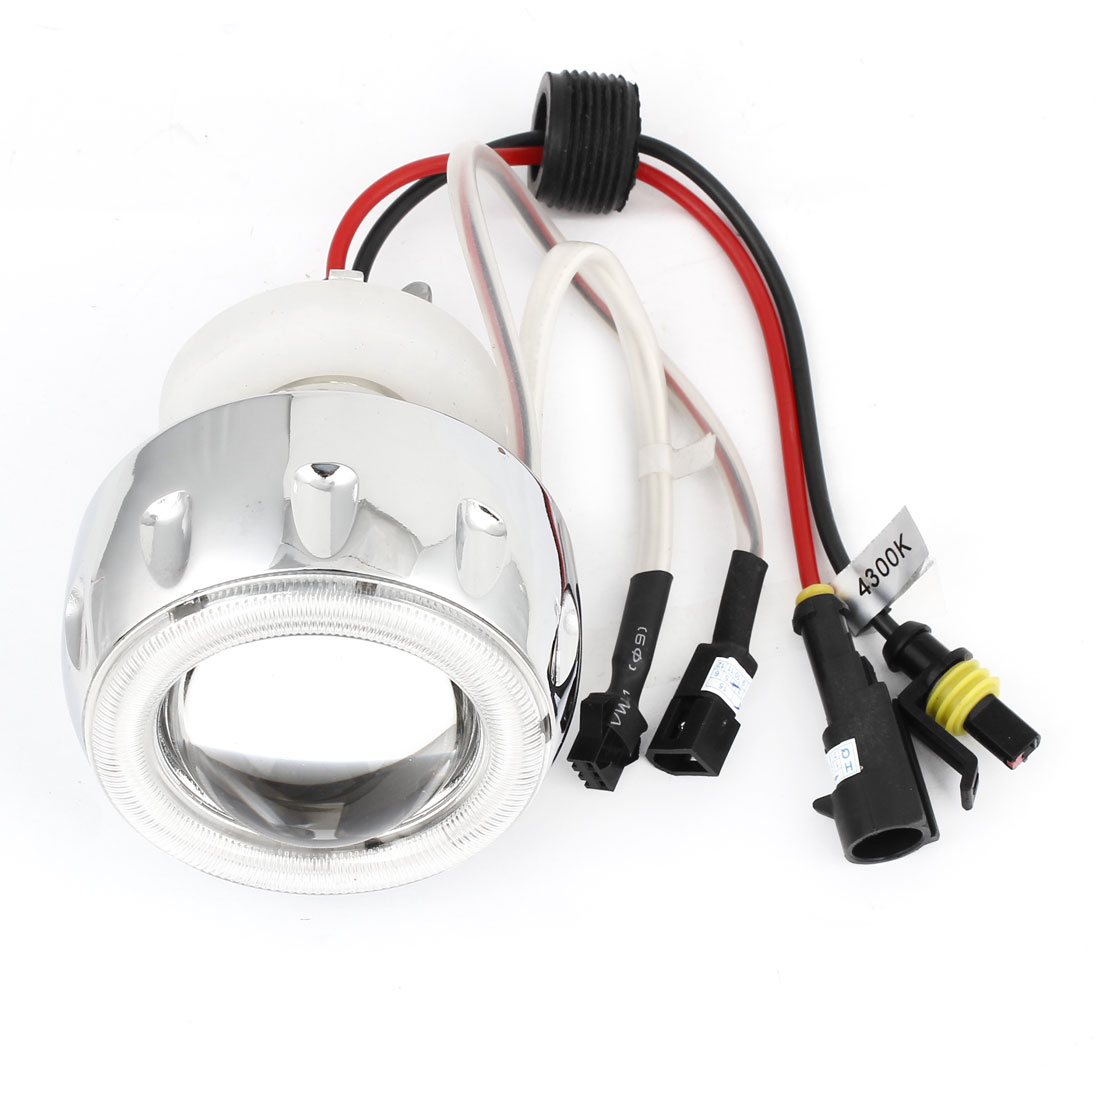 DC 12V 4300K Motorcycle Motorbike HID Xenon Projector White Lens Lamp Kit